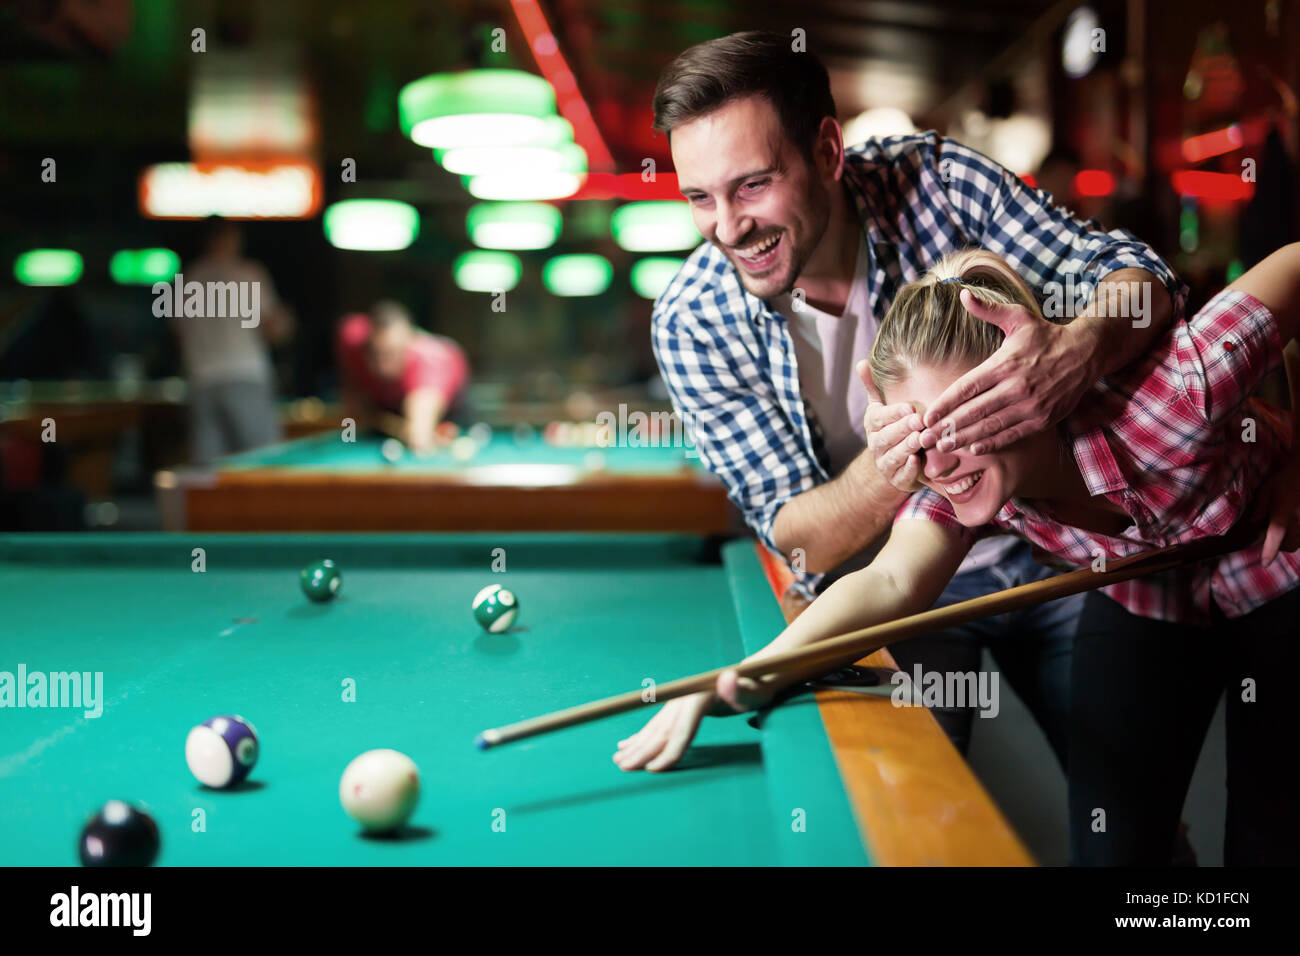 Young couple playing together pool in bar - Stock Image